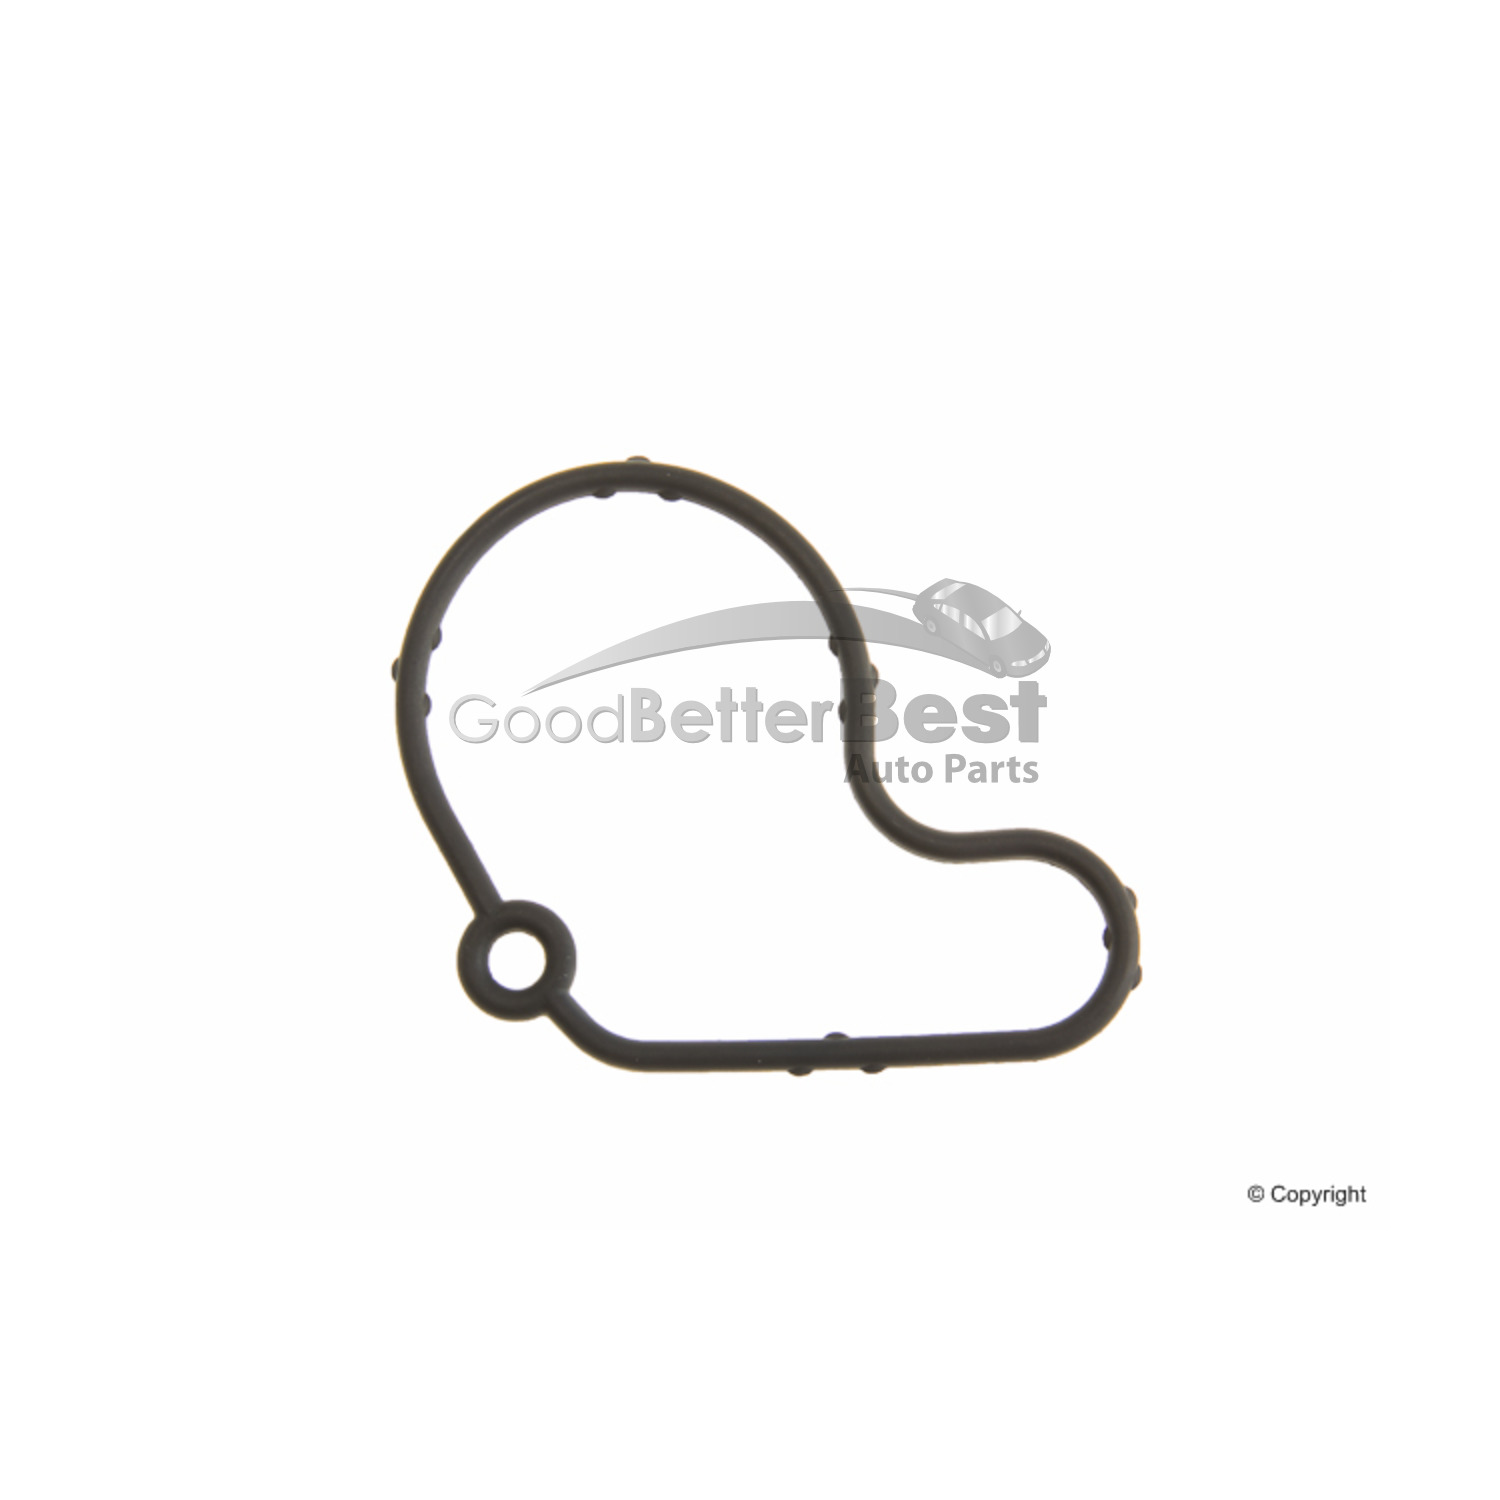 One New Genuine Vacuum Pump Gasket For